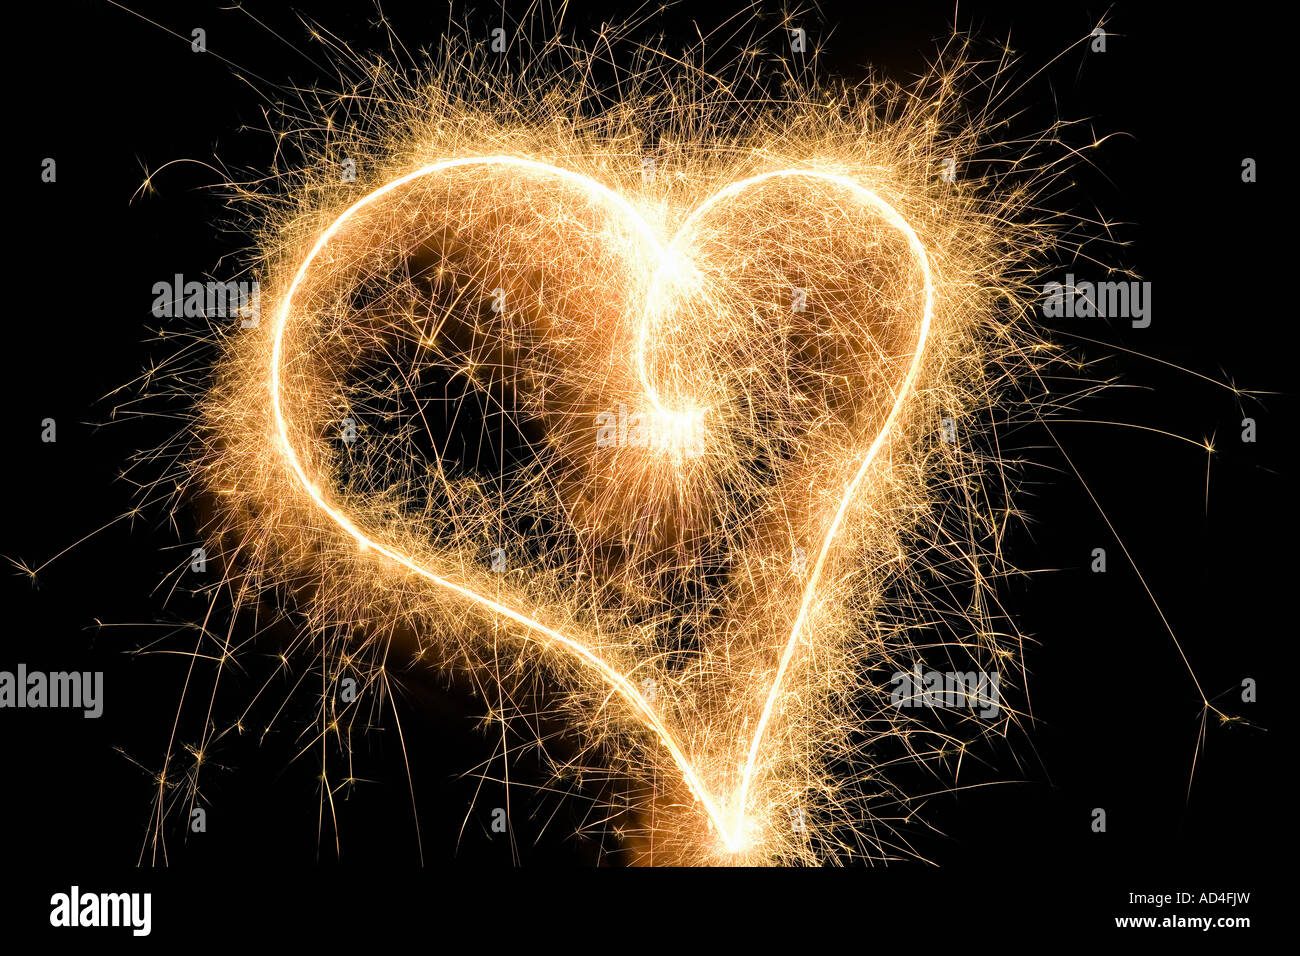 A heart shape drawn with a sparkler Stock Photo